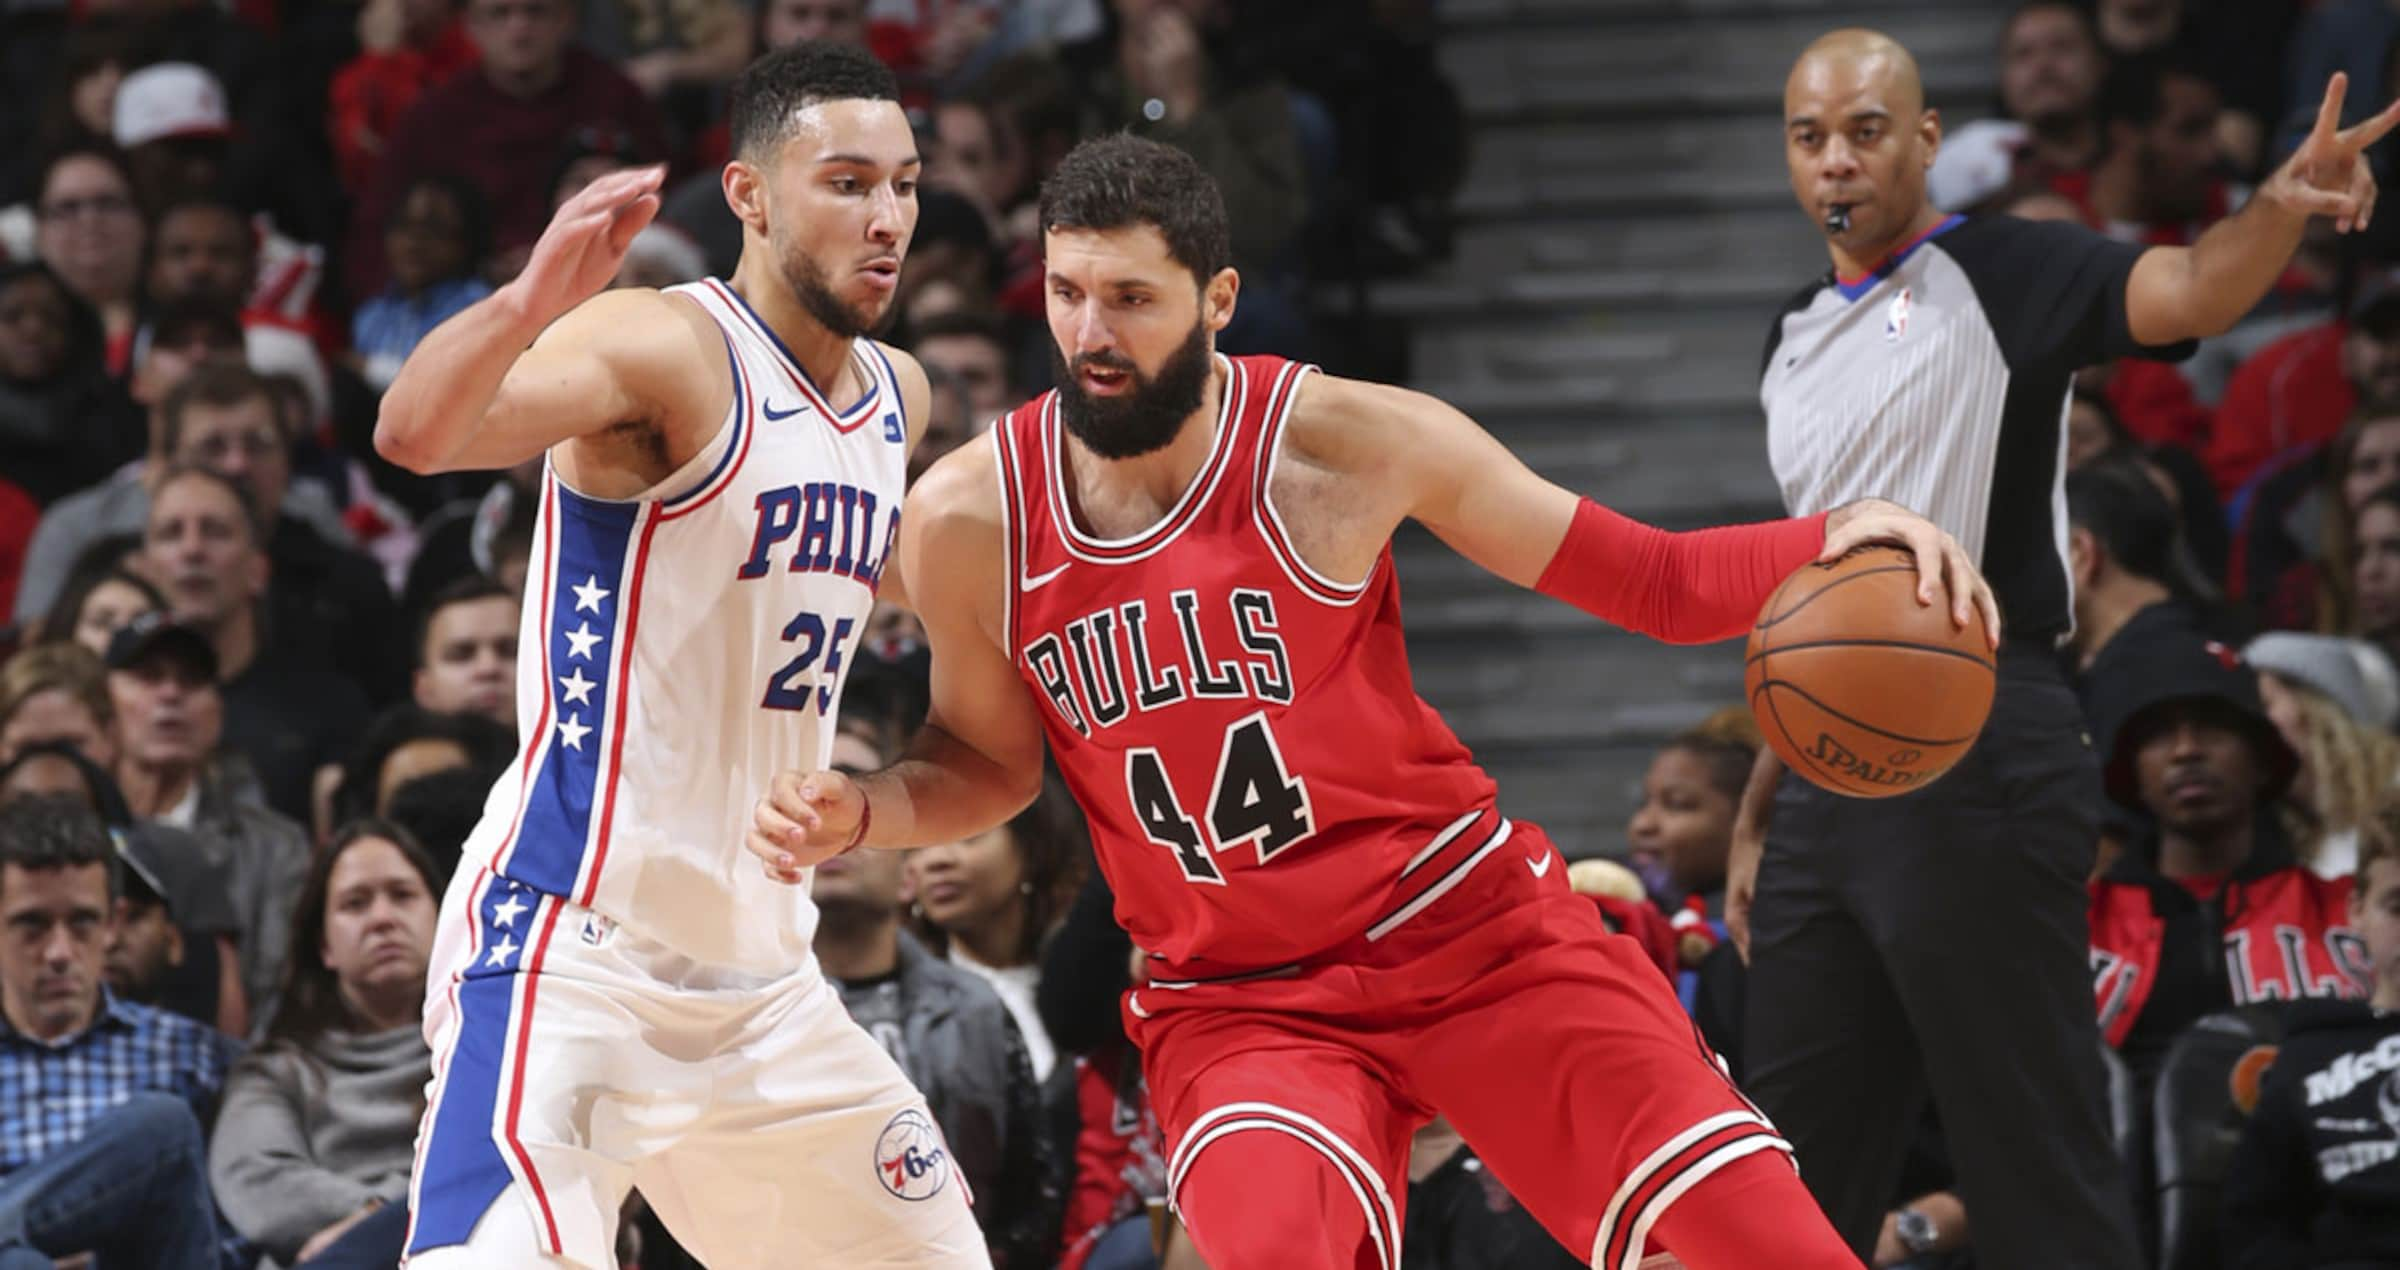 Nikola Mirotic of the Chicago Bulls posting up against Ben Simmons